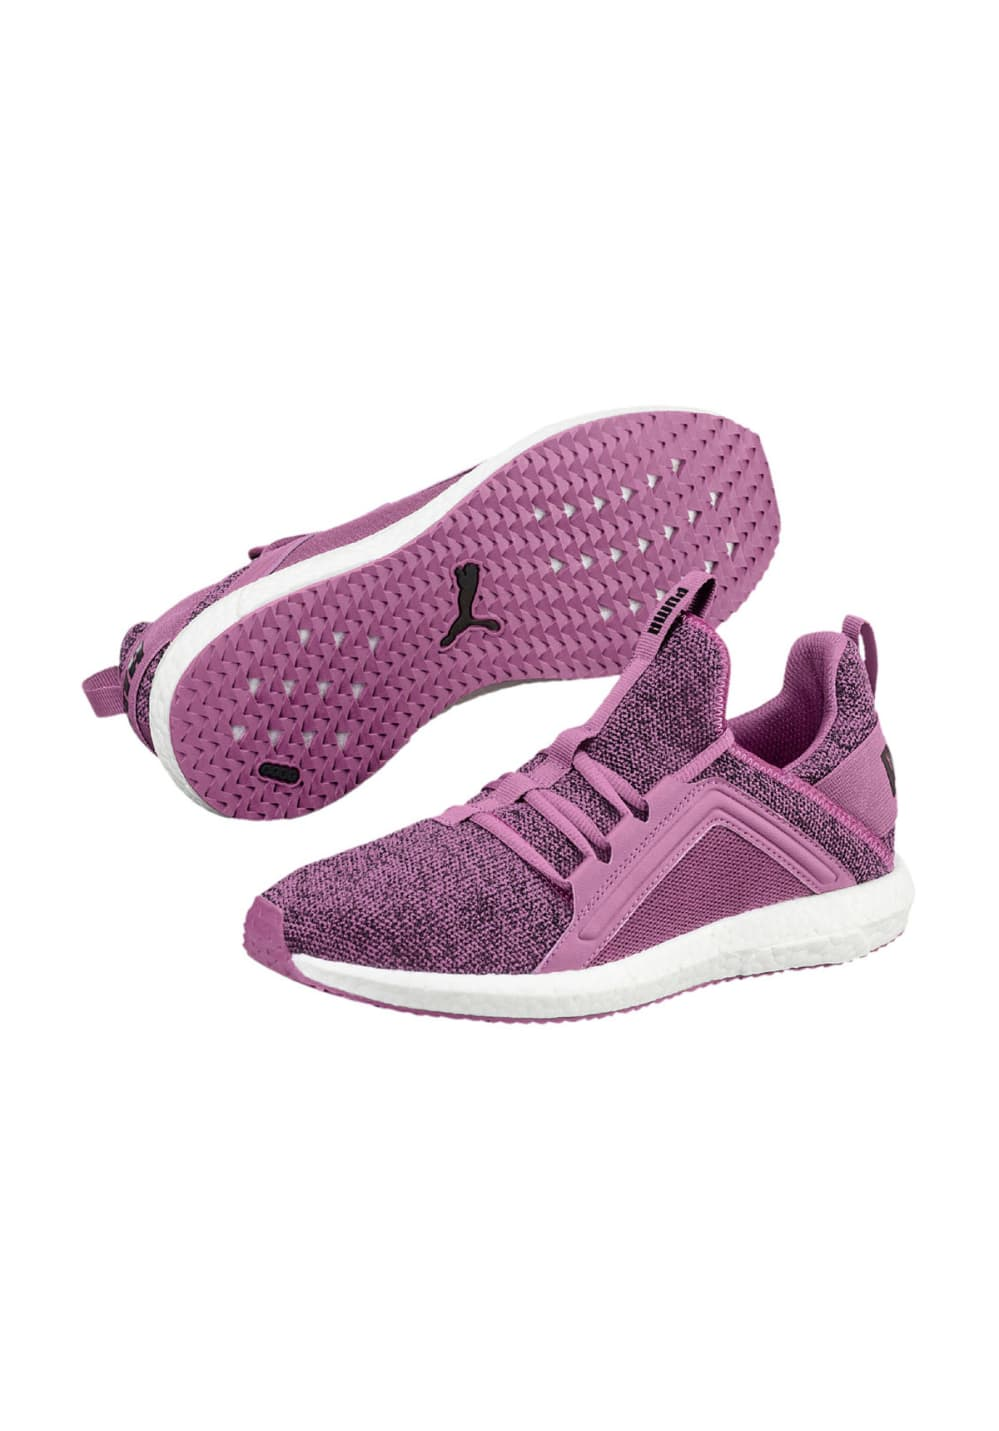 Puma Mega Nrgy Knit Chaussures running pour Femme Rose